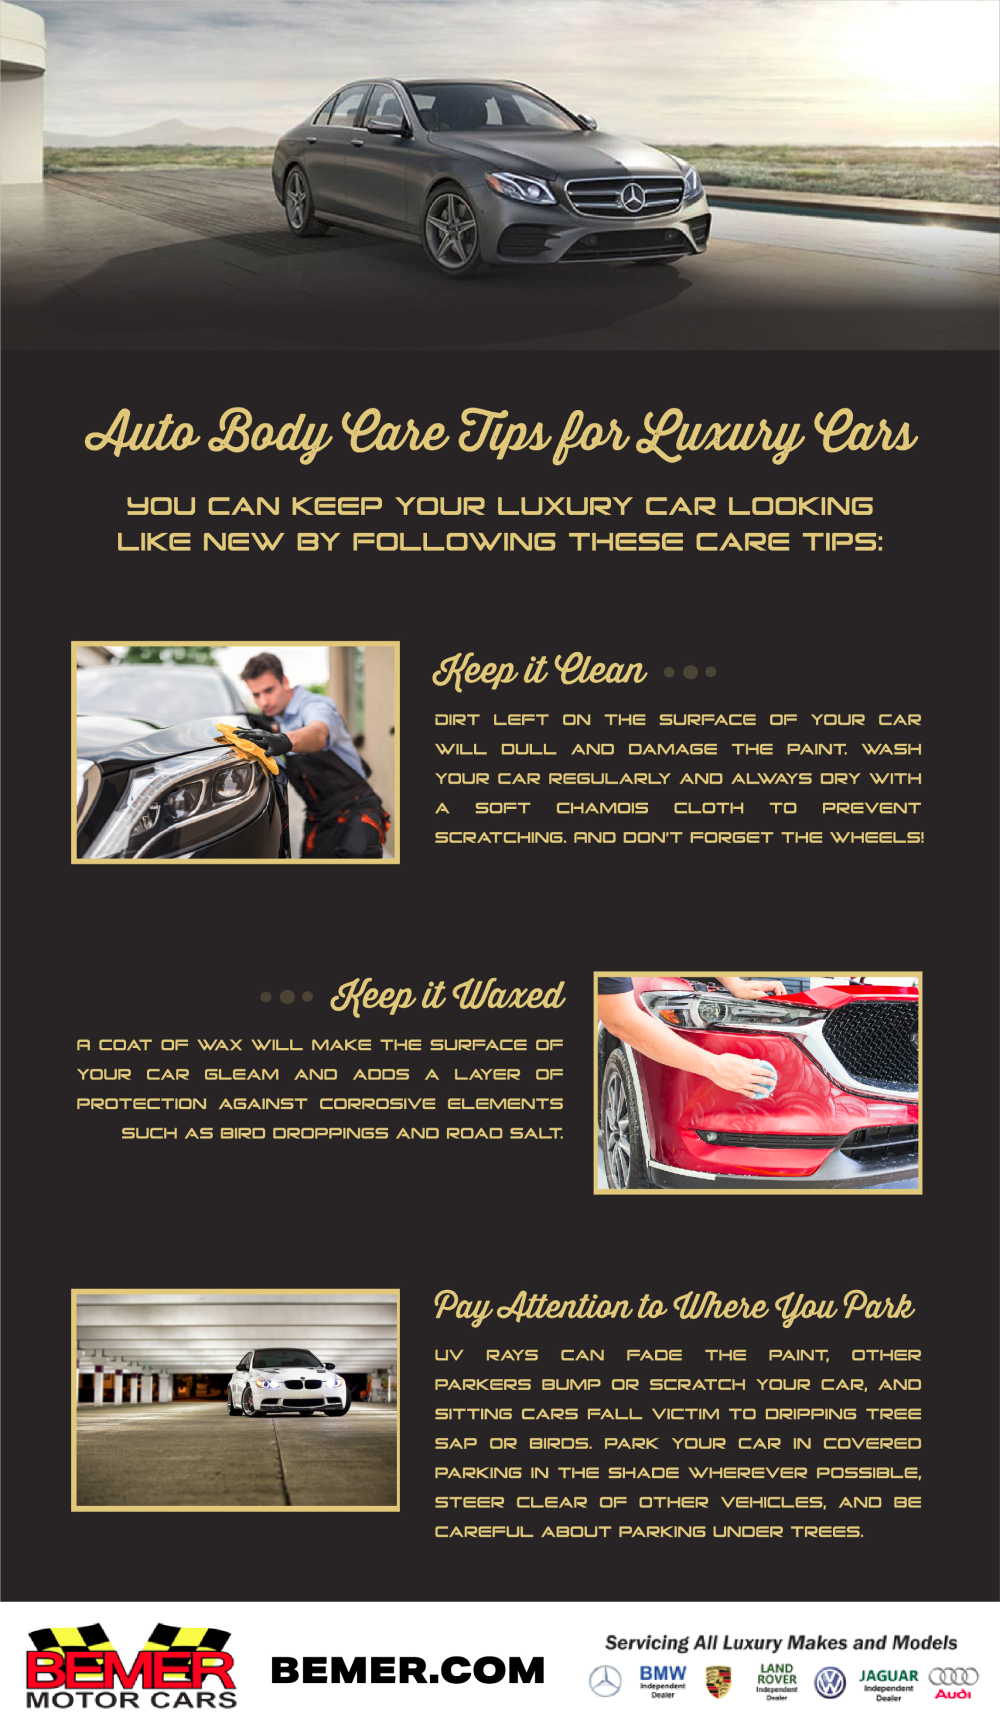 Auto Body Care Tips for Luxury Cars